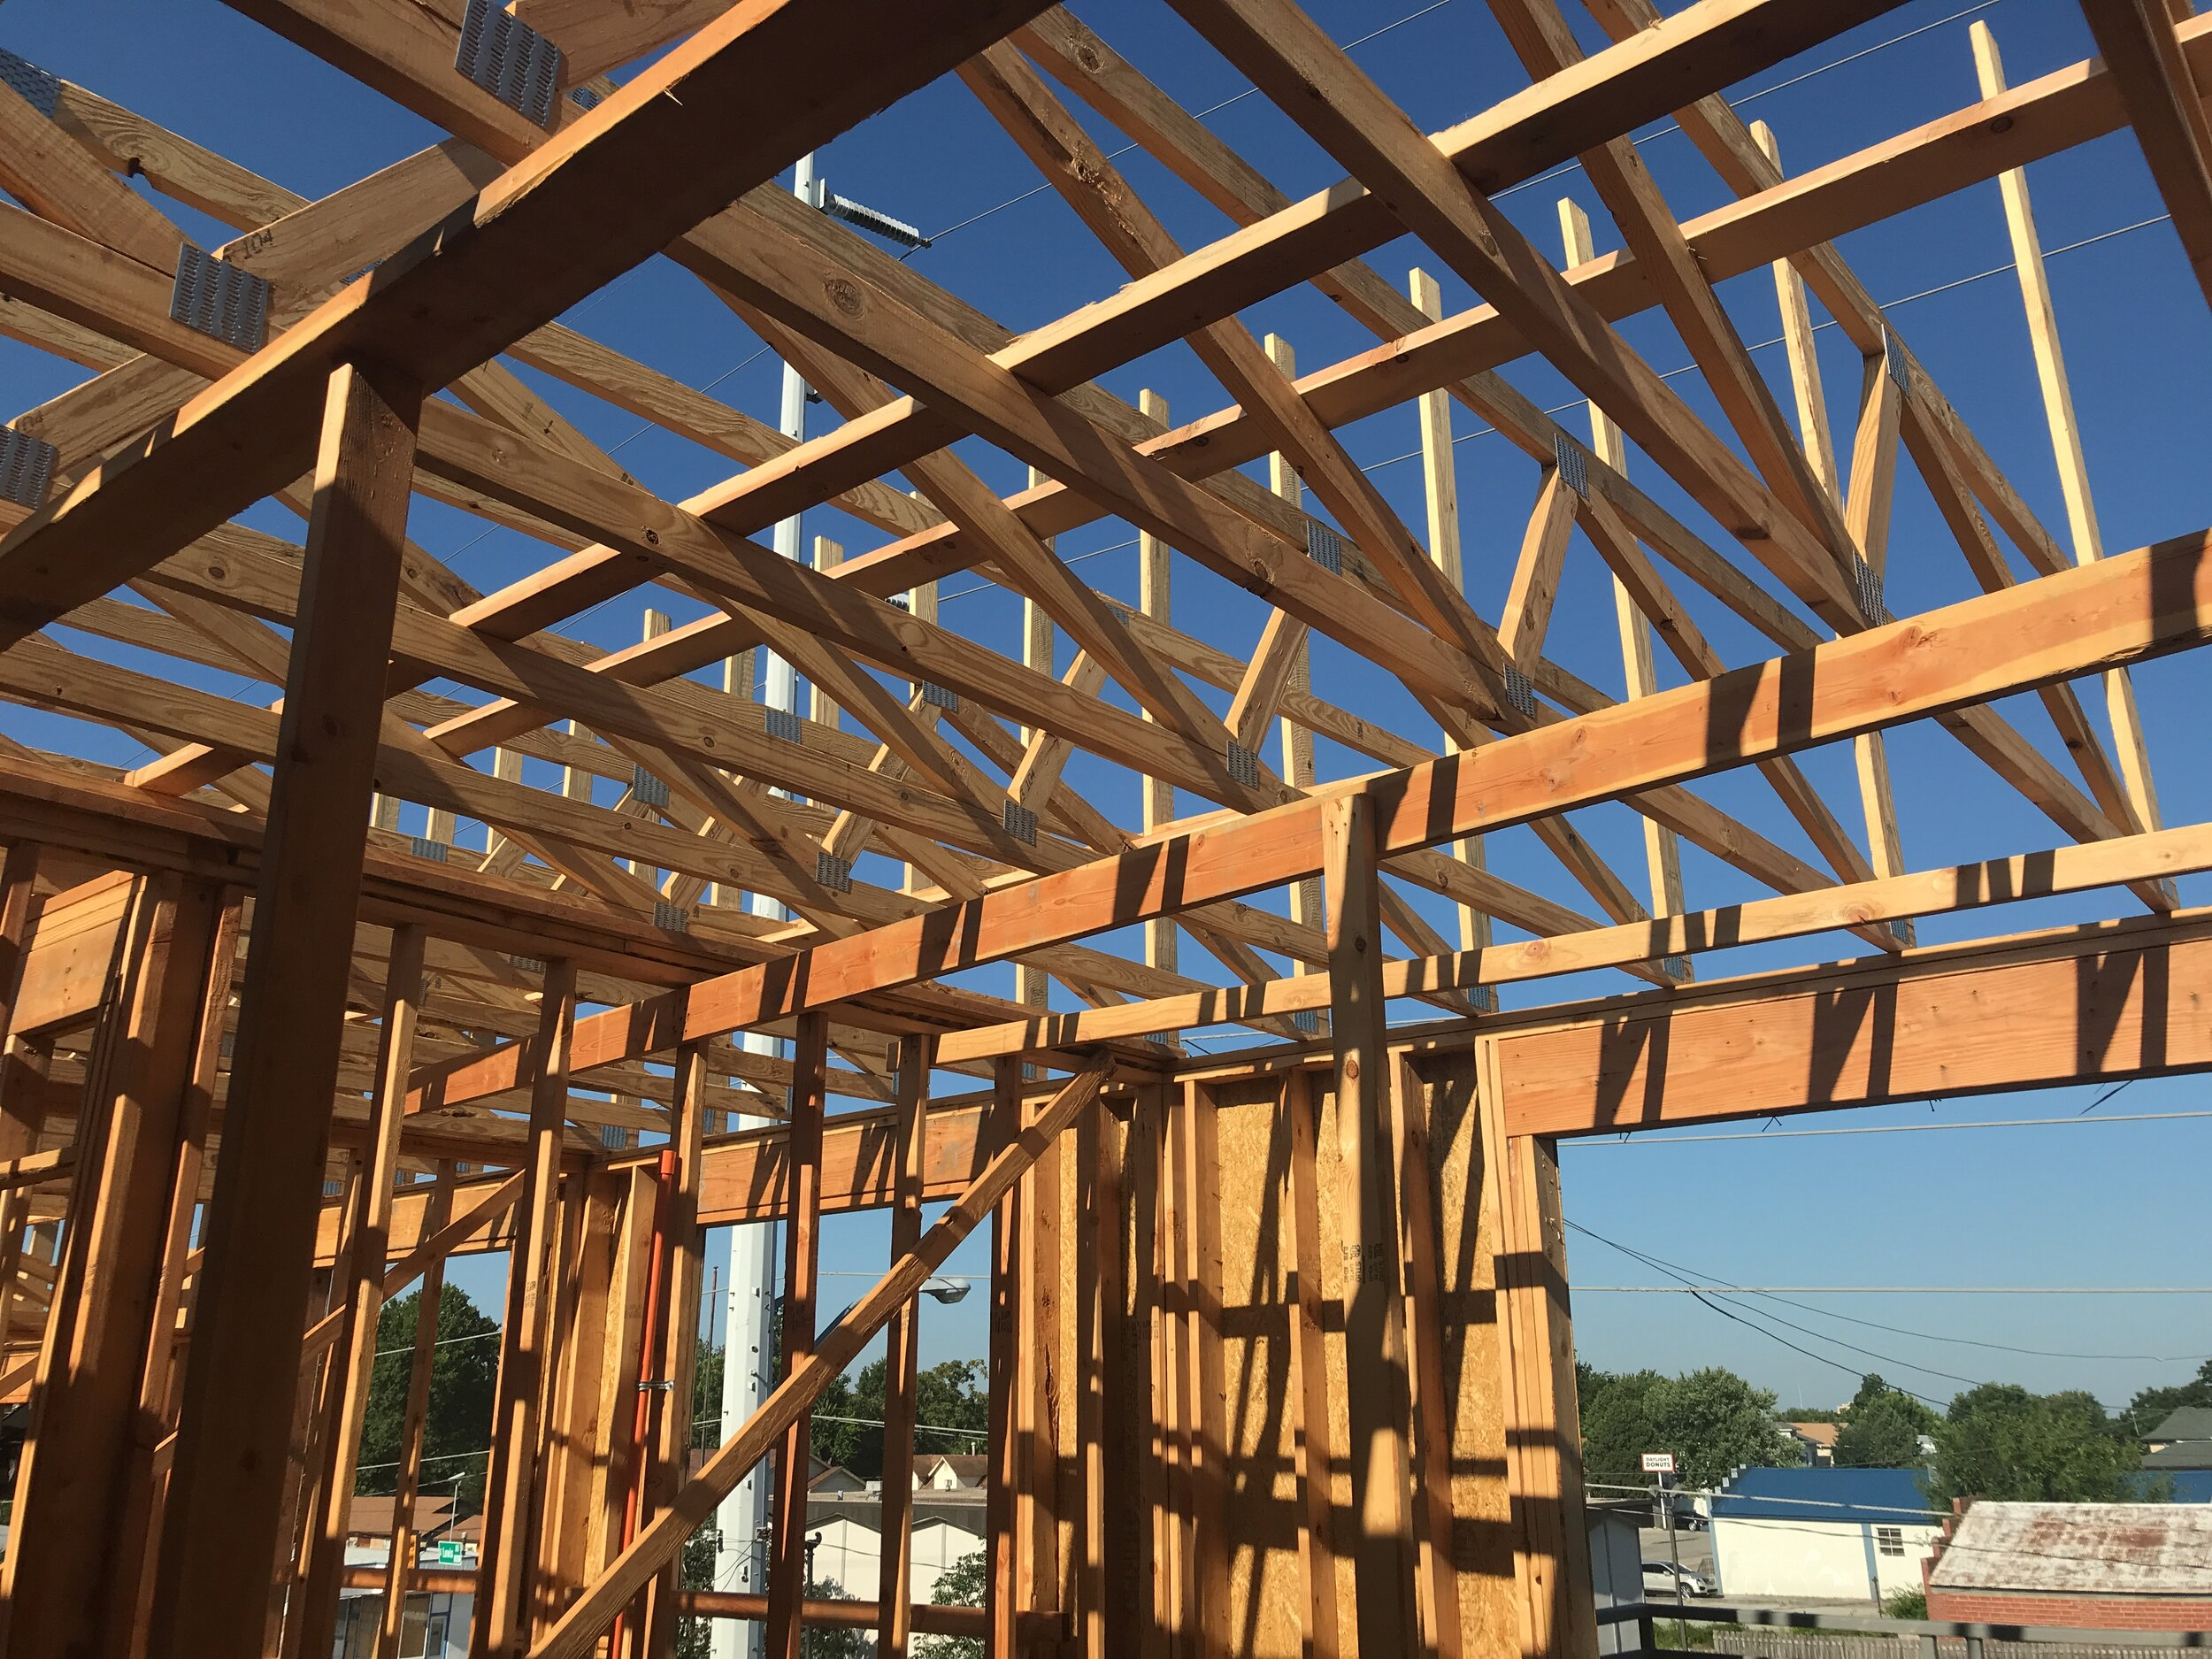 Building 30 Roof Trusses.jpg